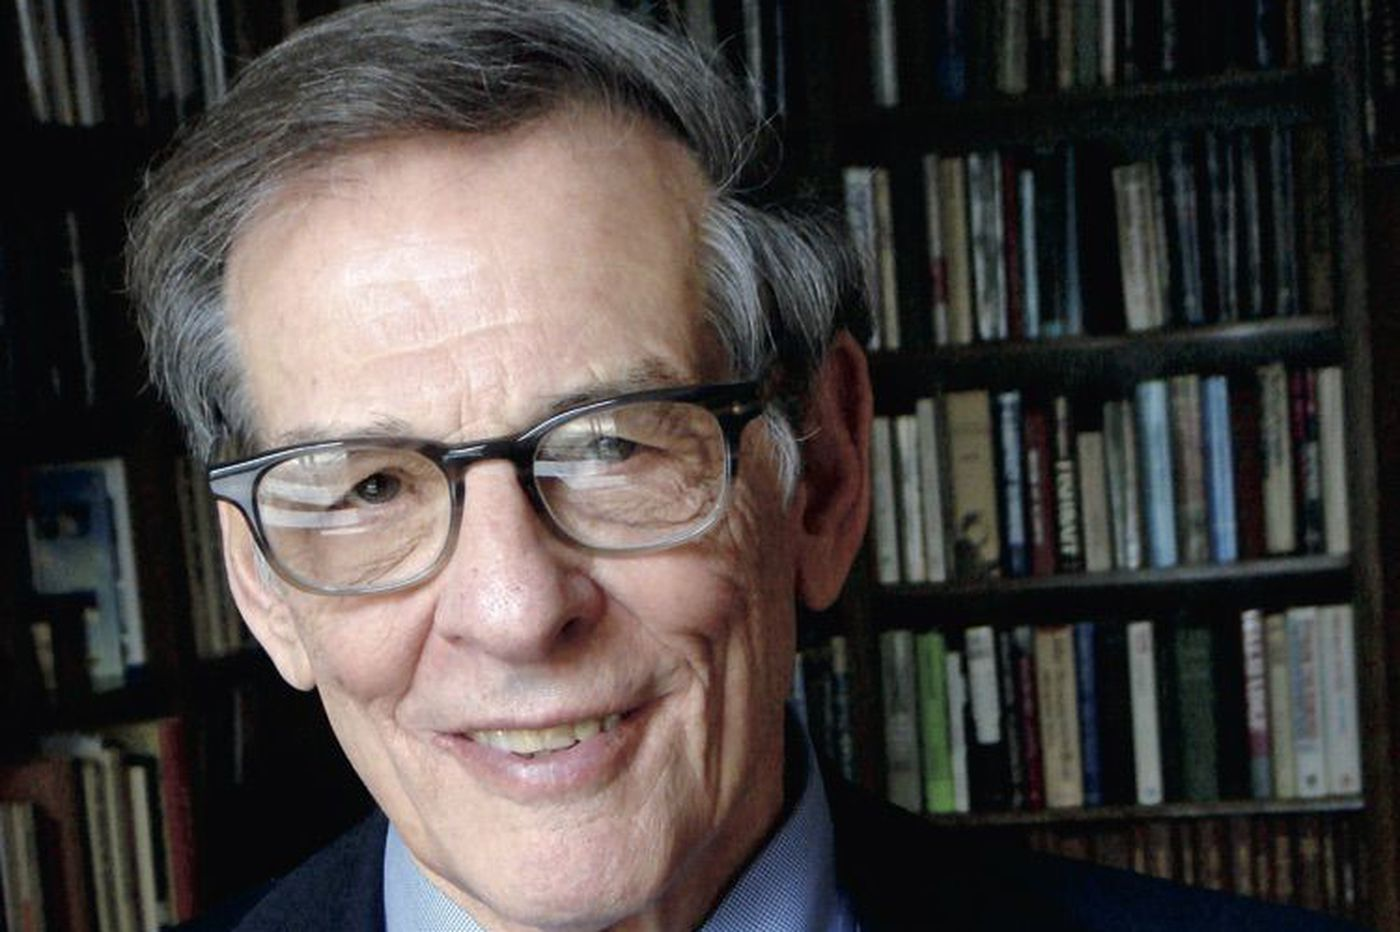 LBJ biographer Robert Caro is 'Working' on finishing his final book, he really is